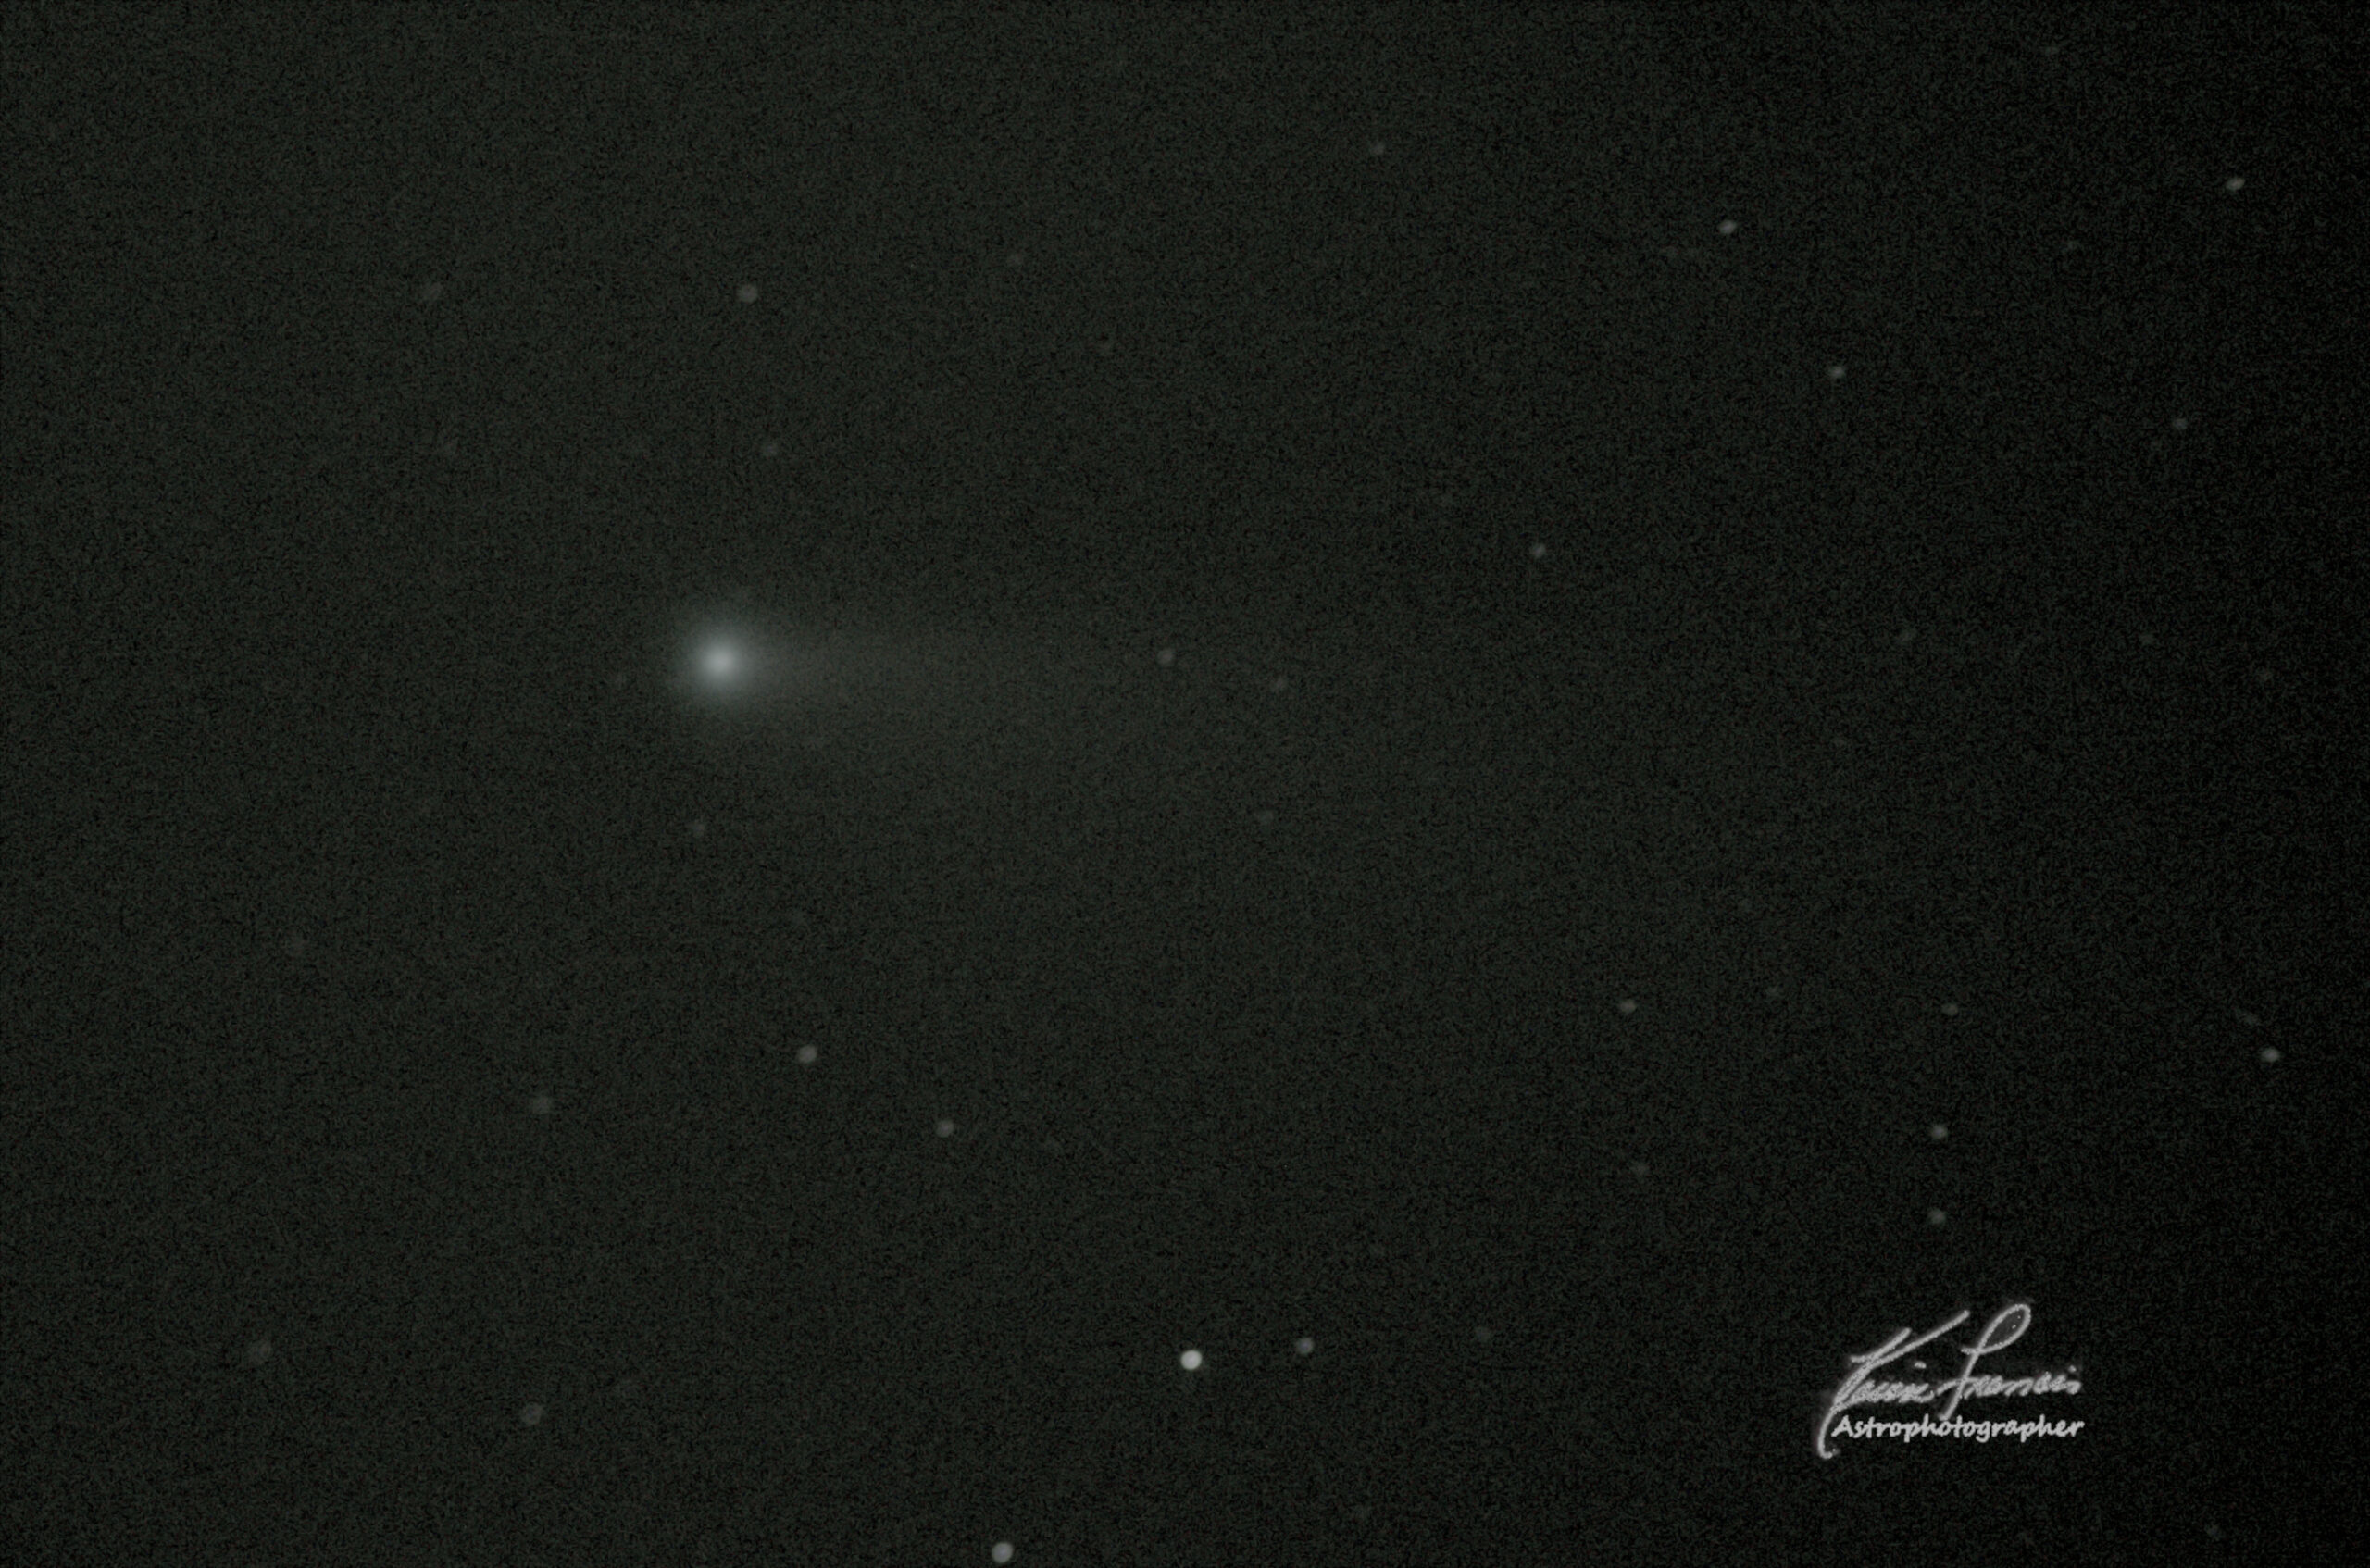 Comet Neowise: The Elusive One [C/2020 F3]